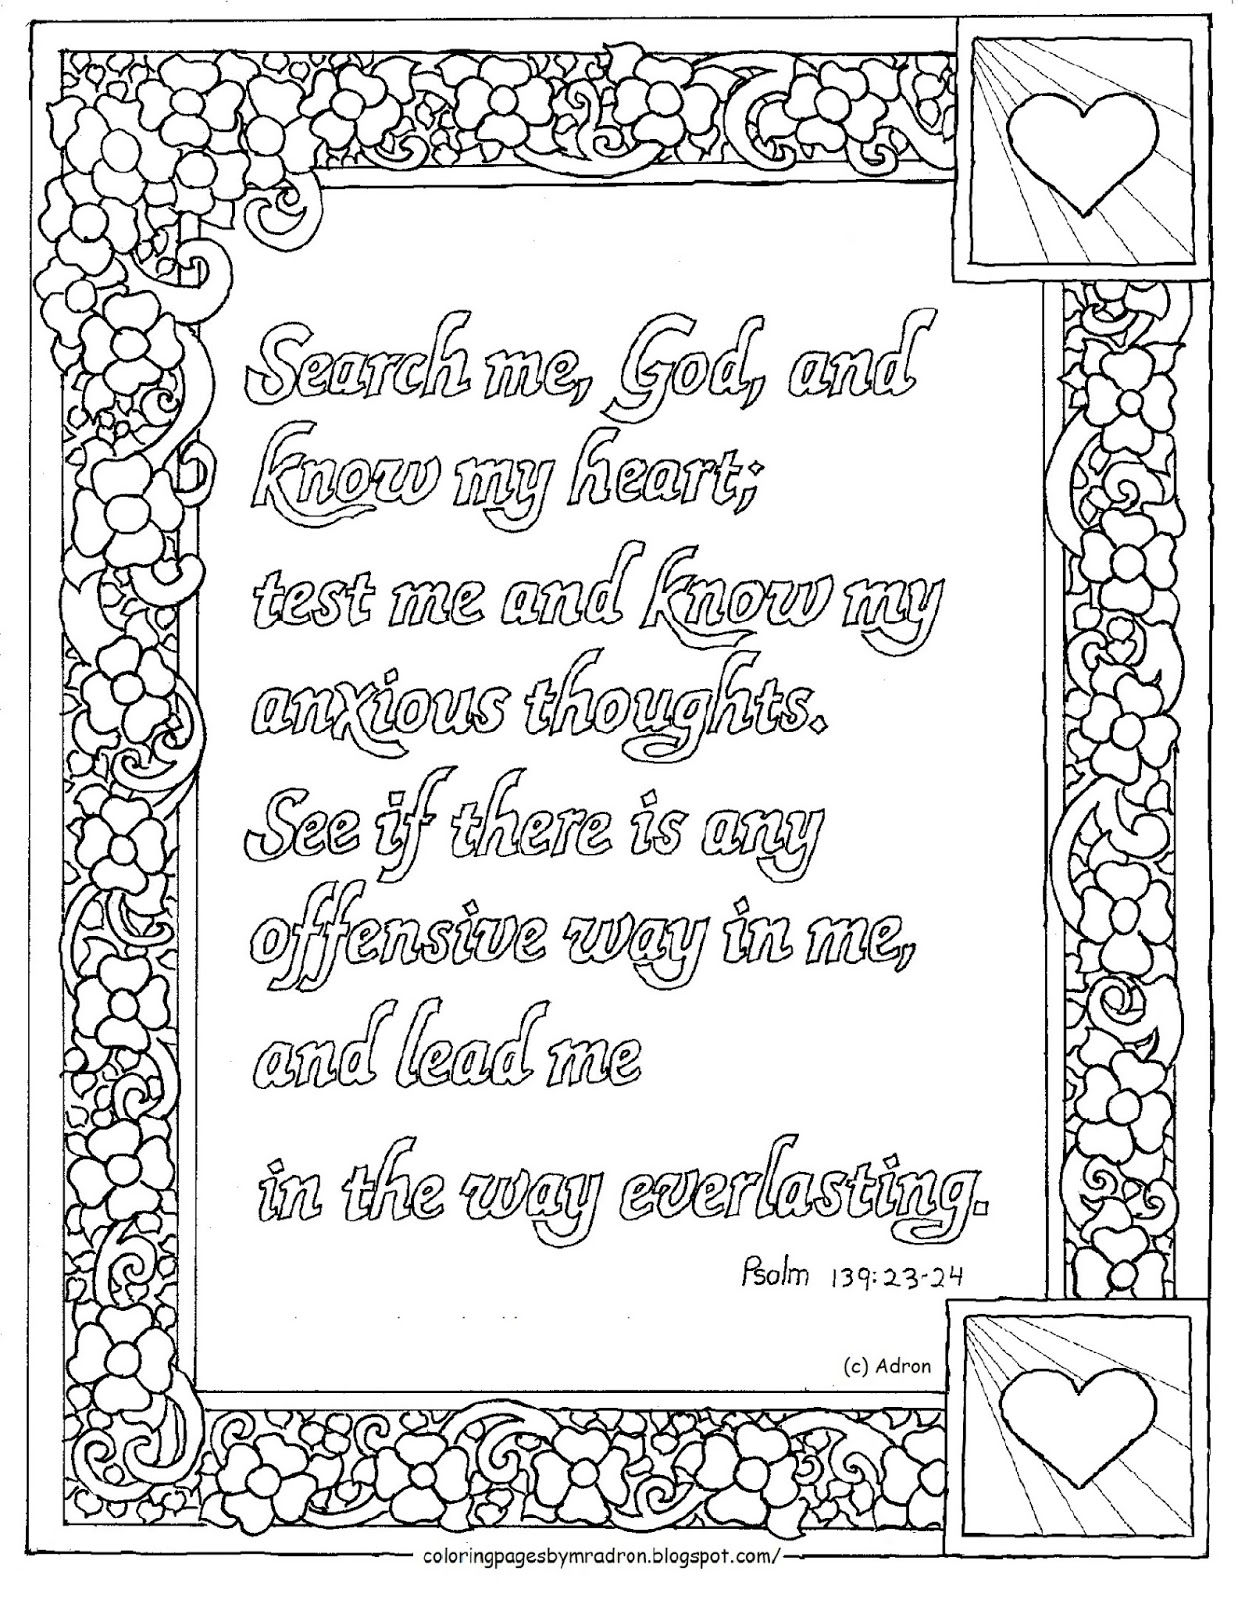 Coloring Pages For Kids By Mr Adron Printable Psalm 13923 24 Page Search Me God And Know My Heart